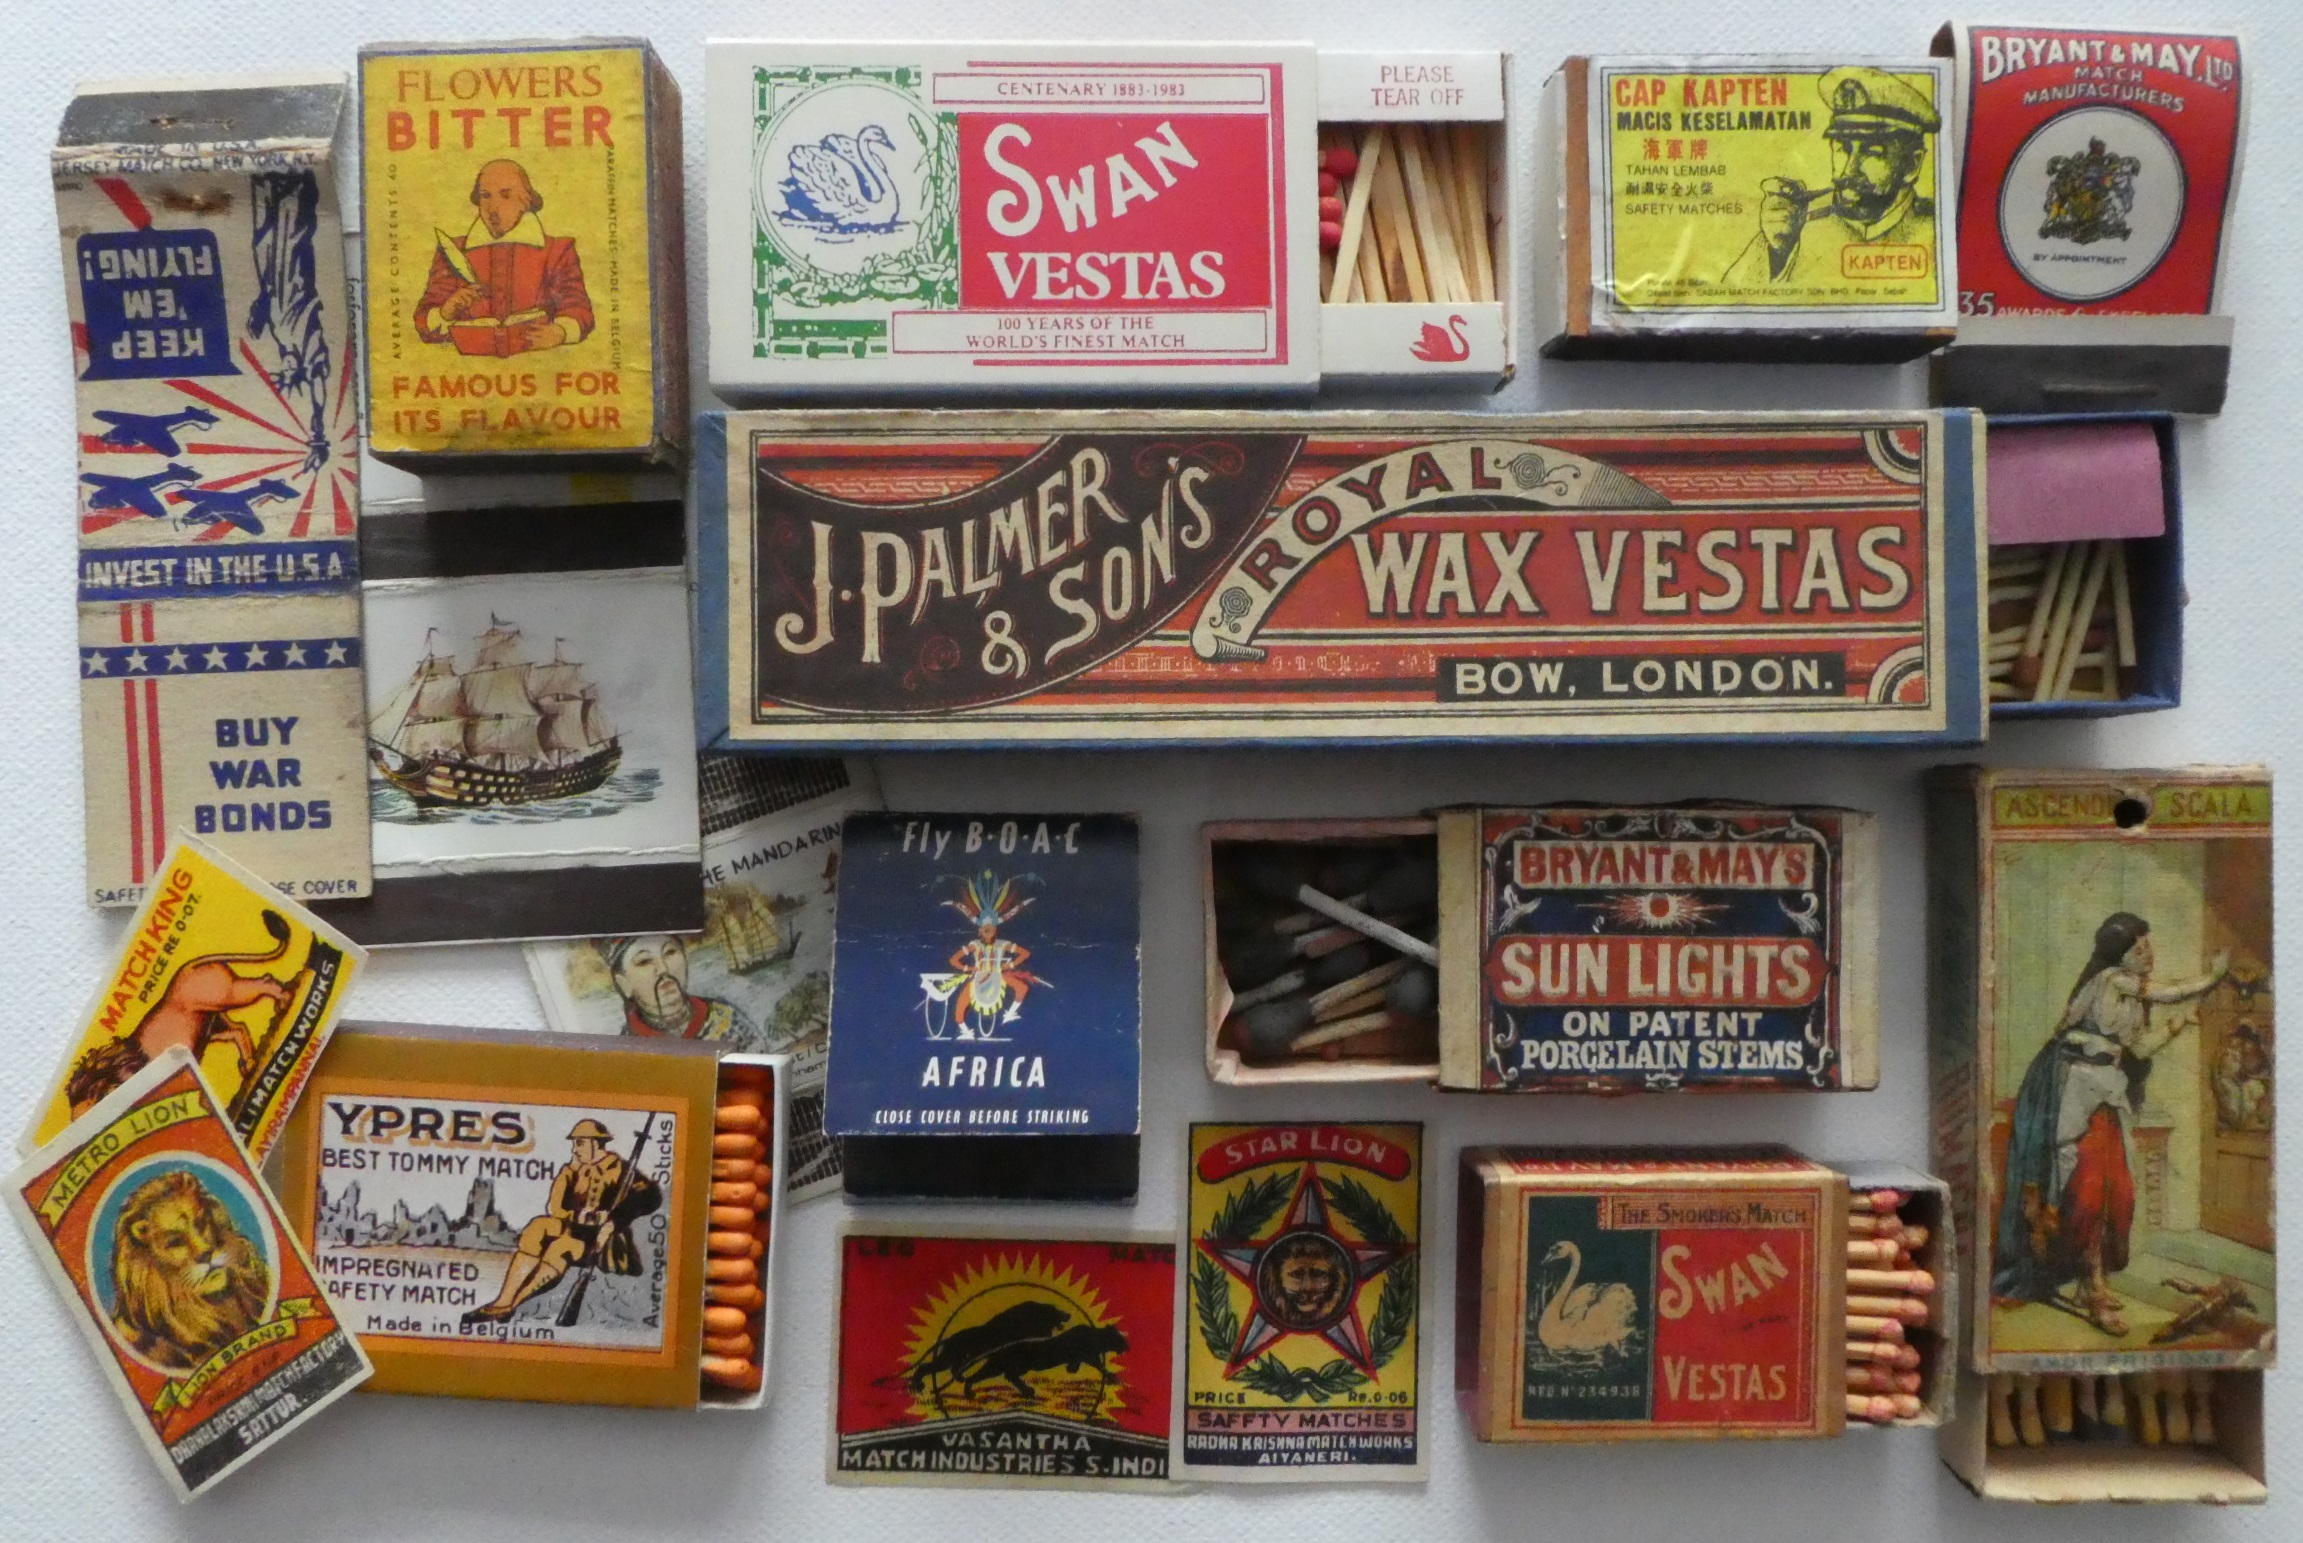 Here are some items that interest our members and inspire them to collect